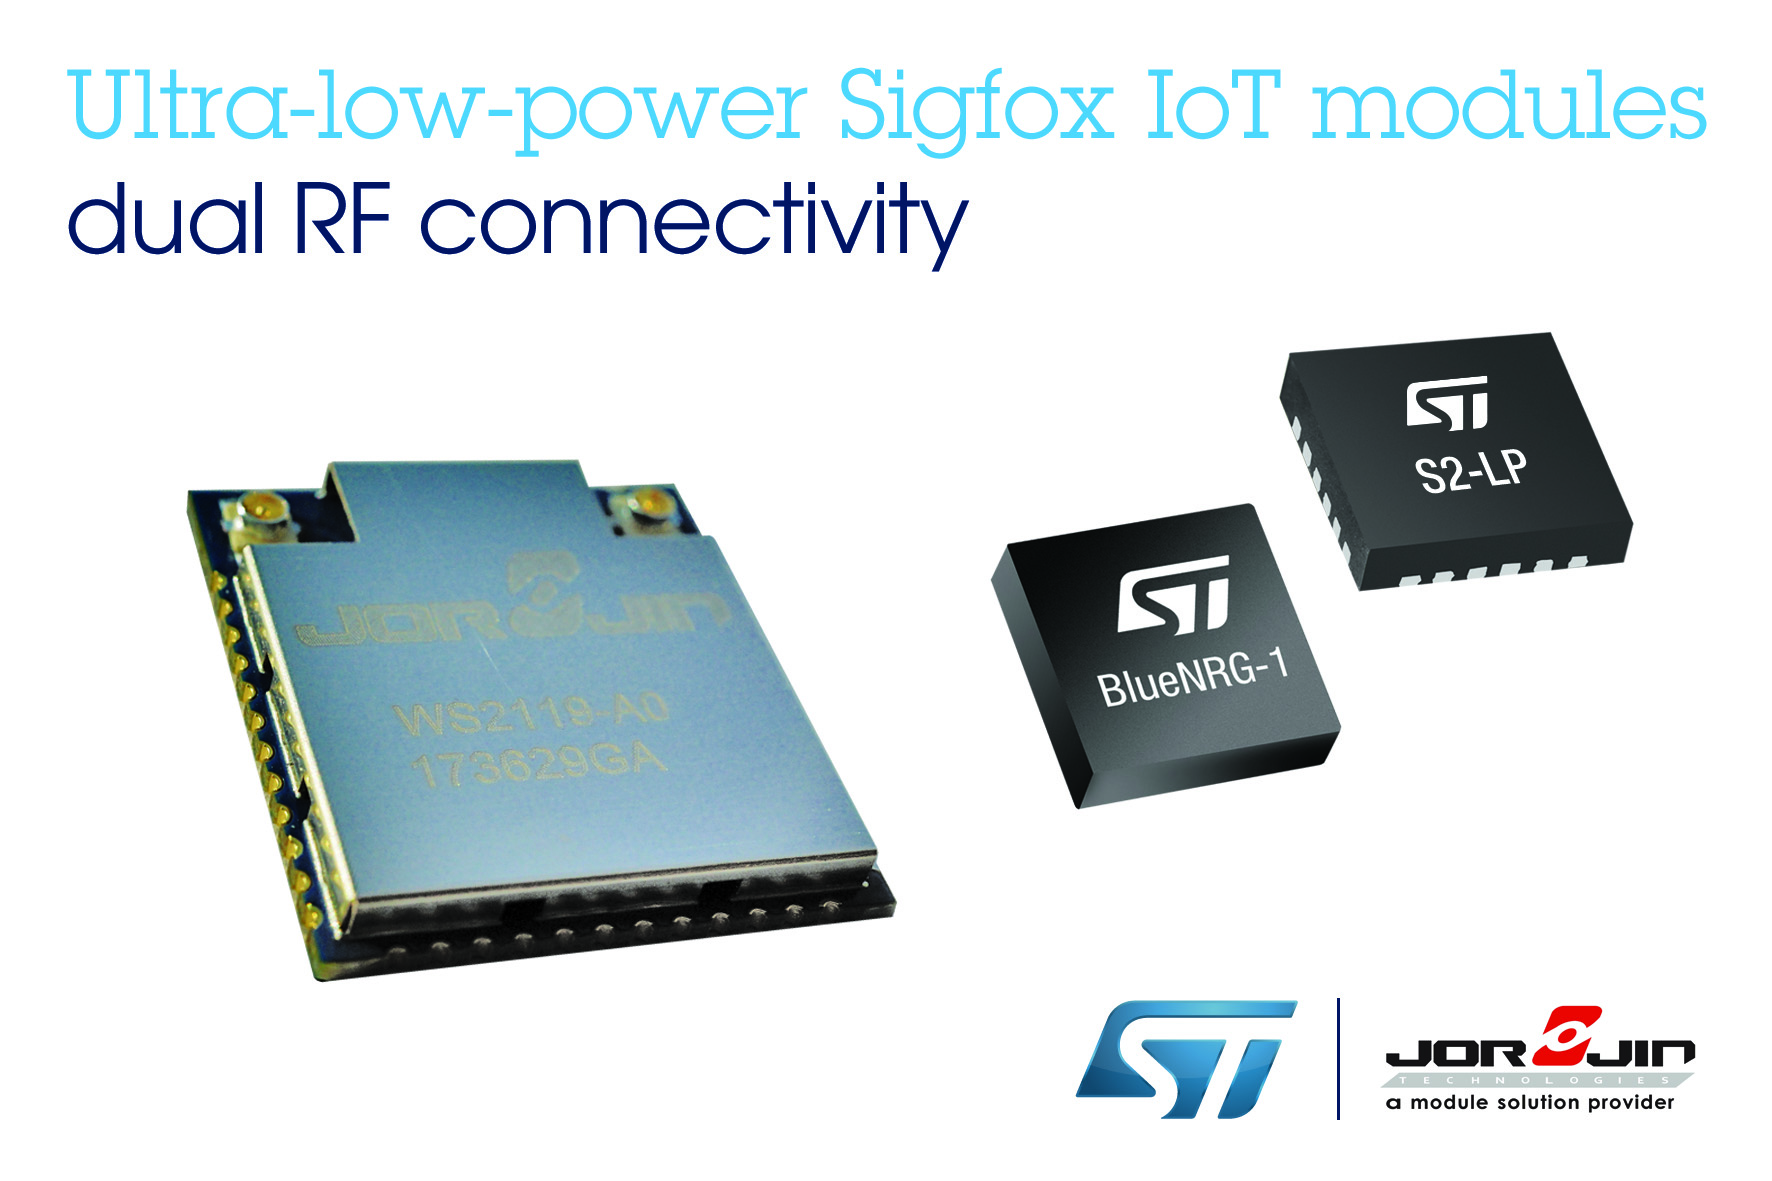 STMicroelectronics and Jorjin Introduce Ultra-Low-Power Sigfox